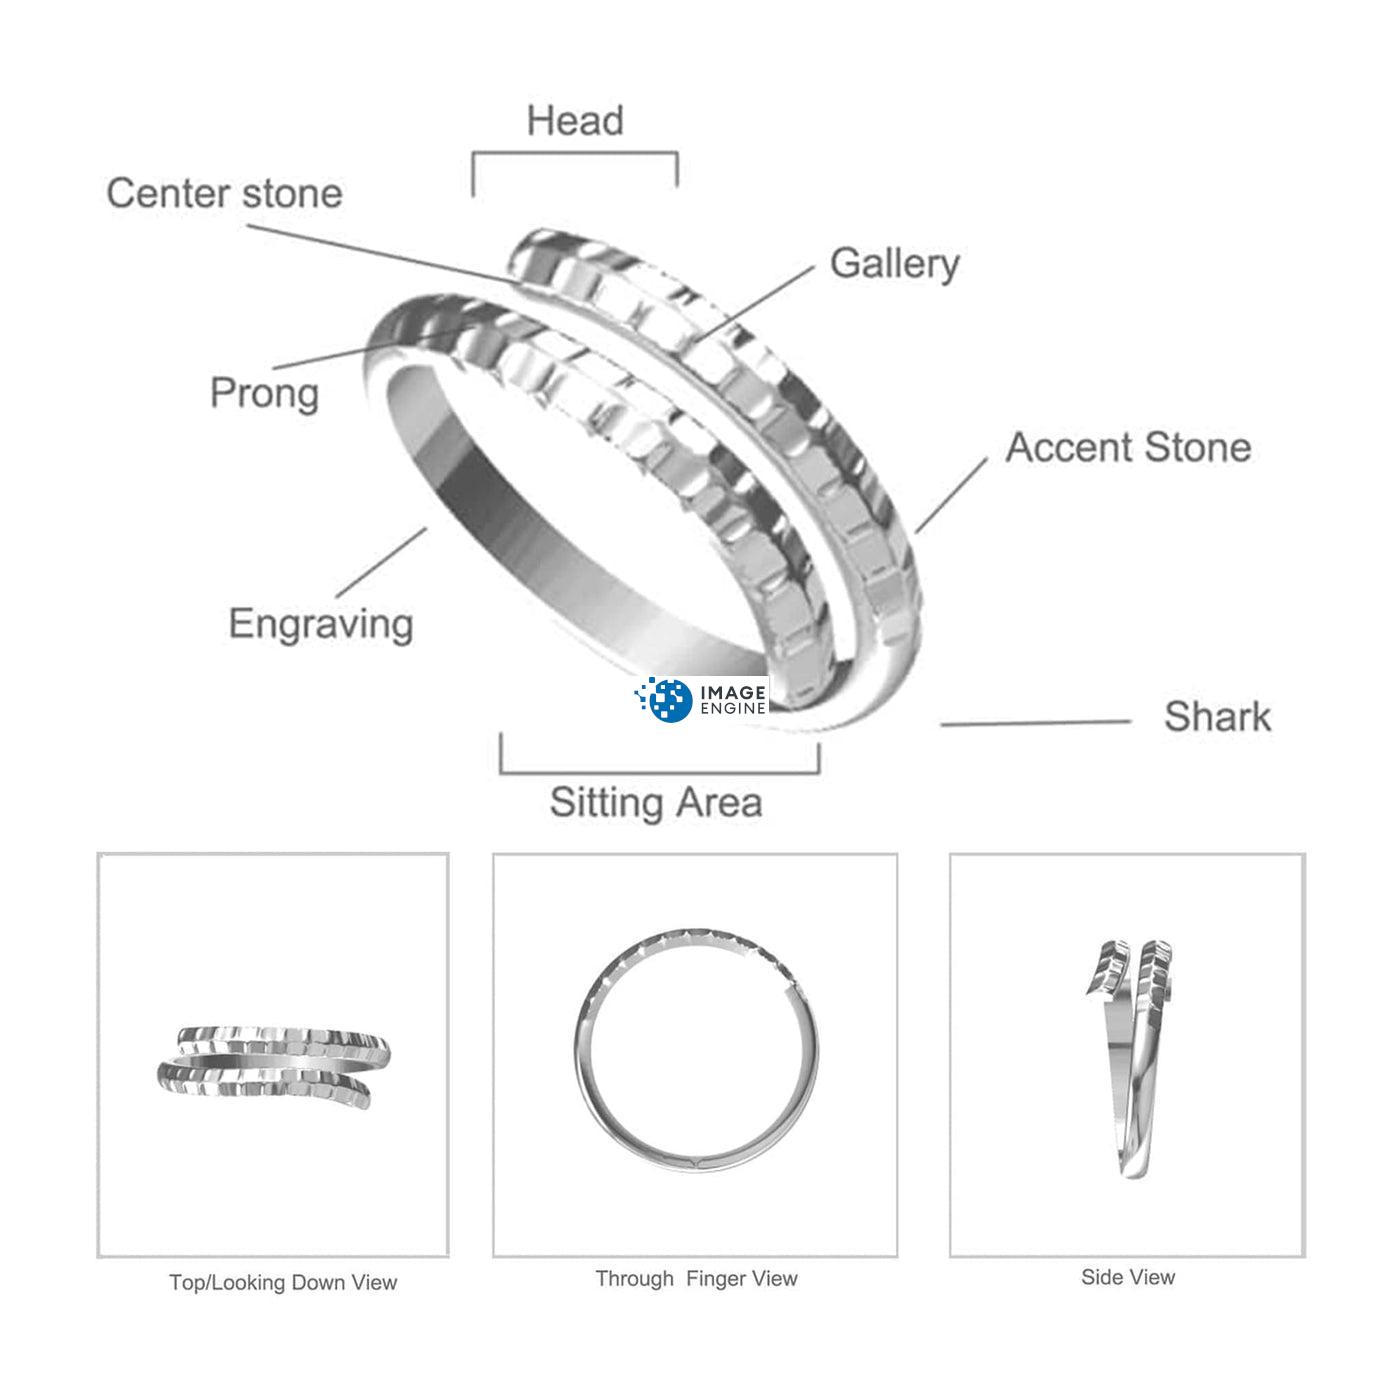 Minimalist Thumb Ring Diagram and Specifications